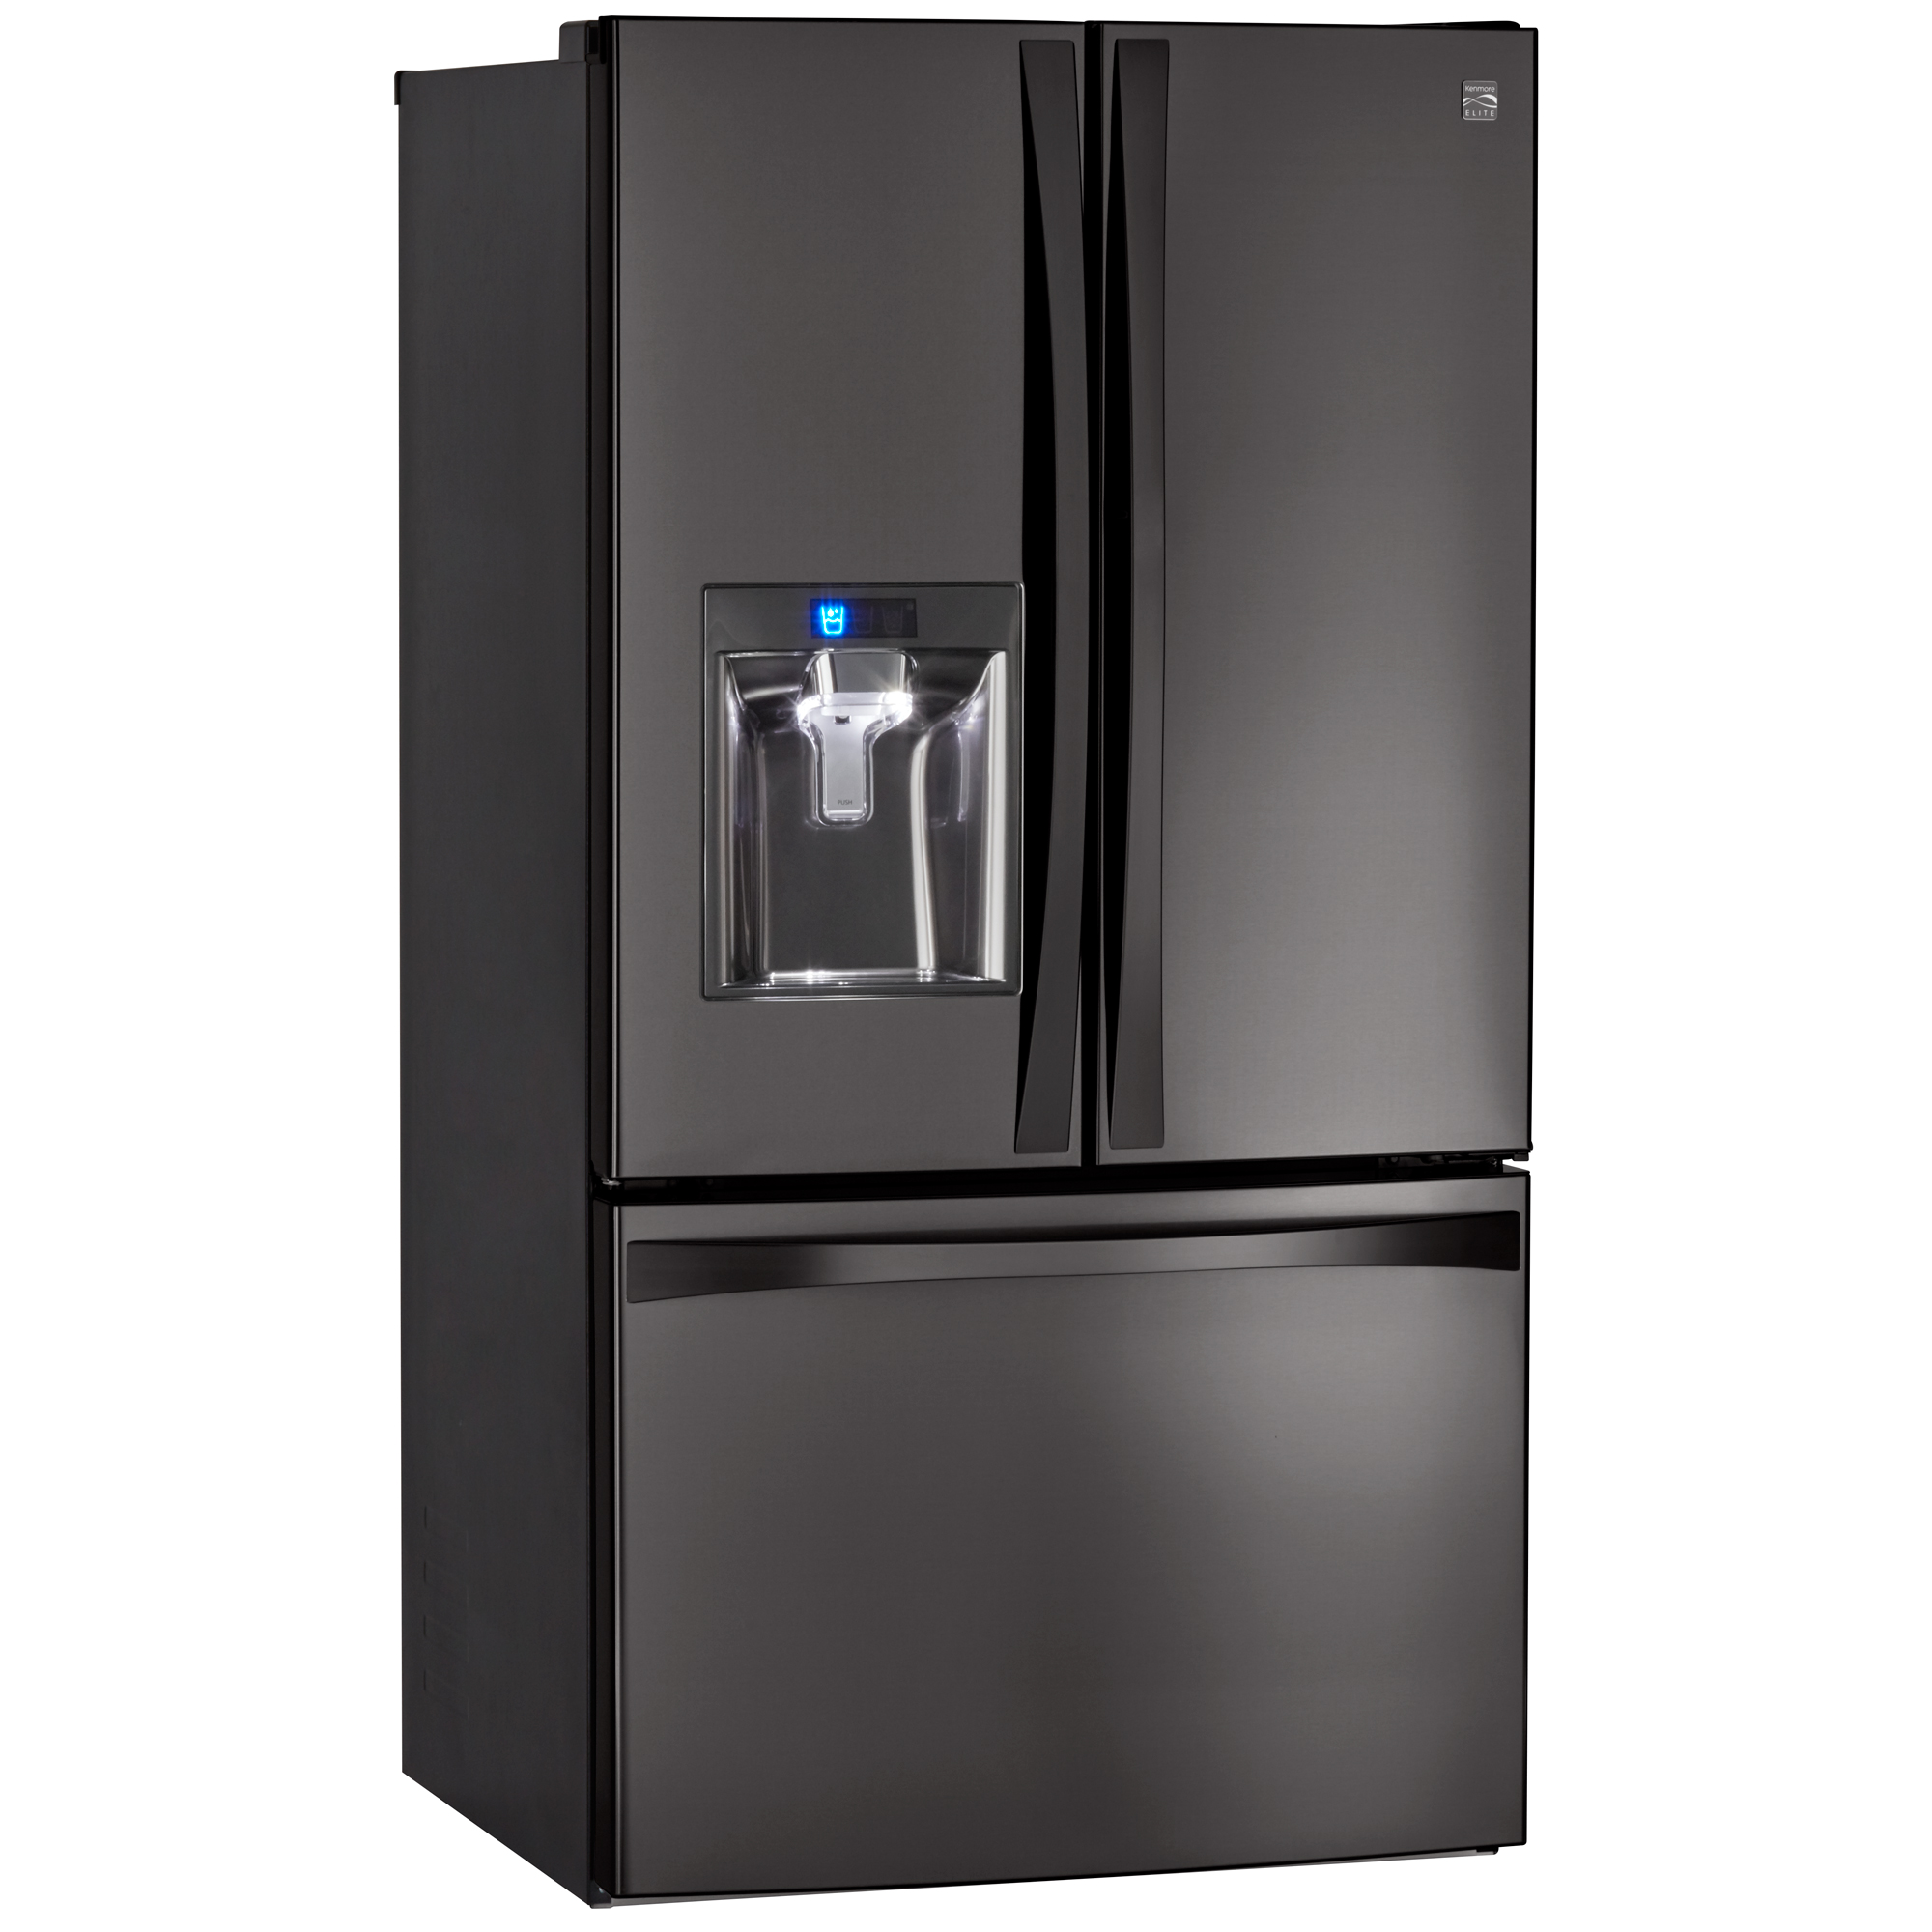 Kenmore Elite 73157 28.7 cu. ft. French Door Bottom Freezer Refrigerator – Black Stainless Steel